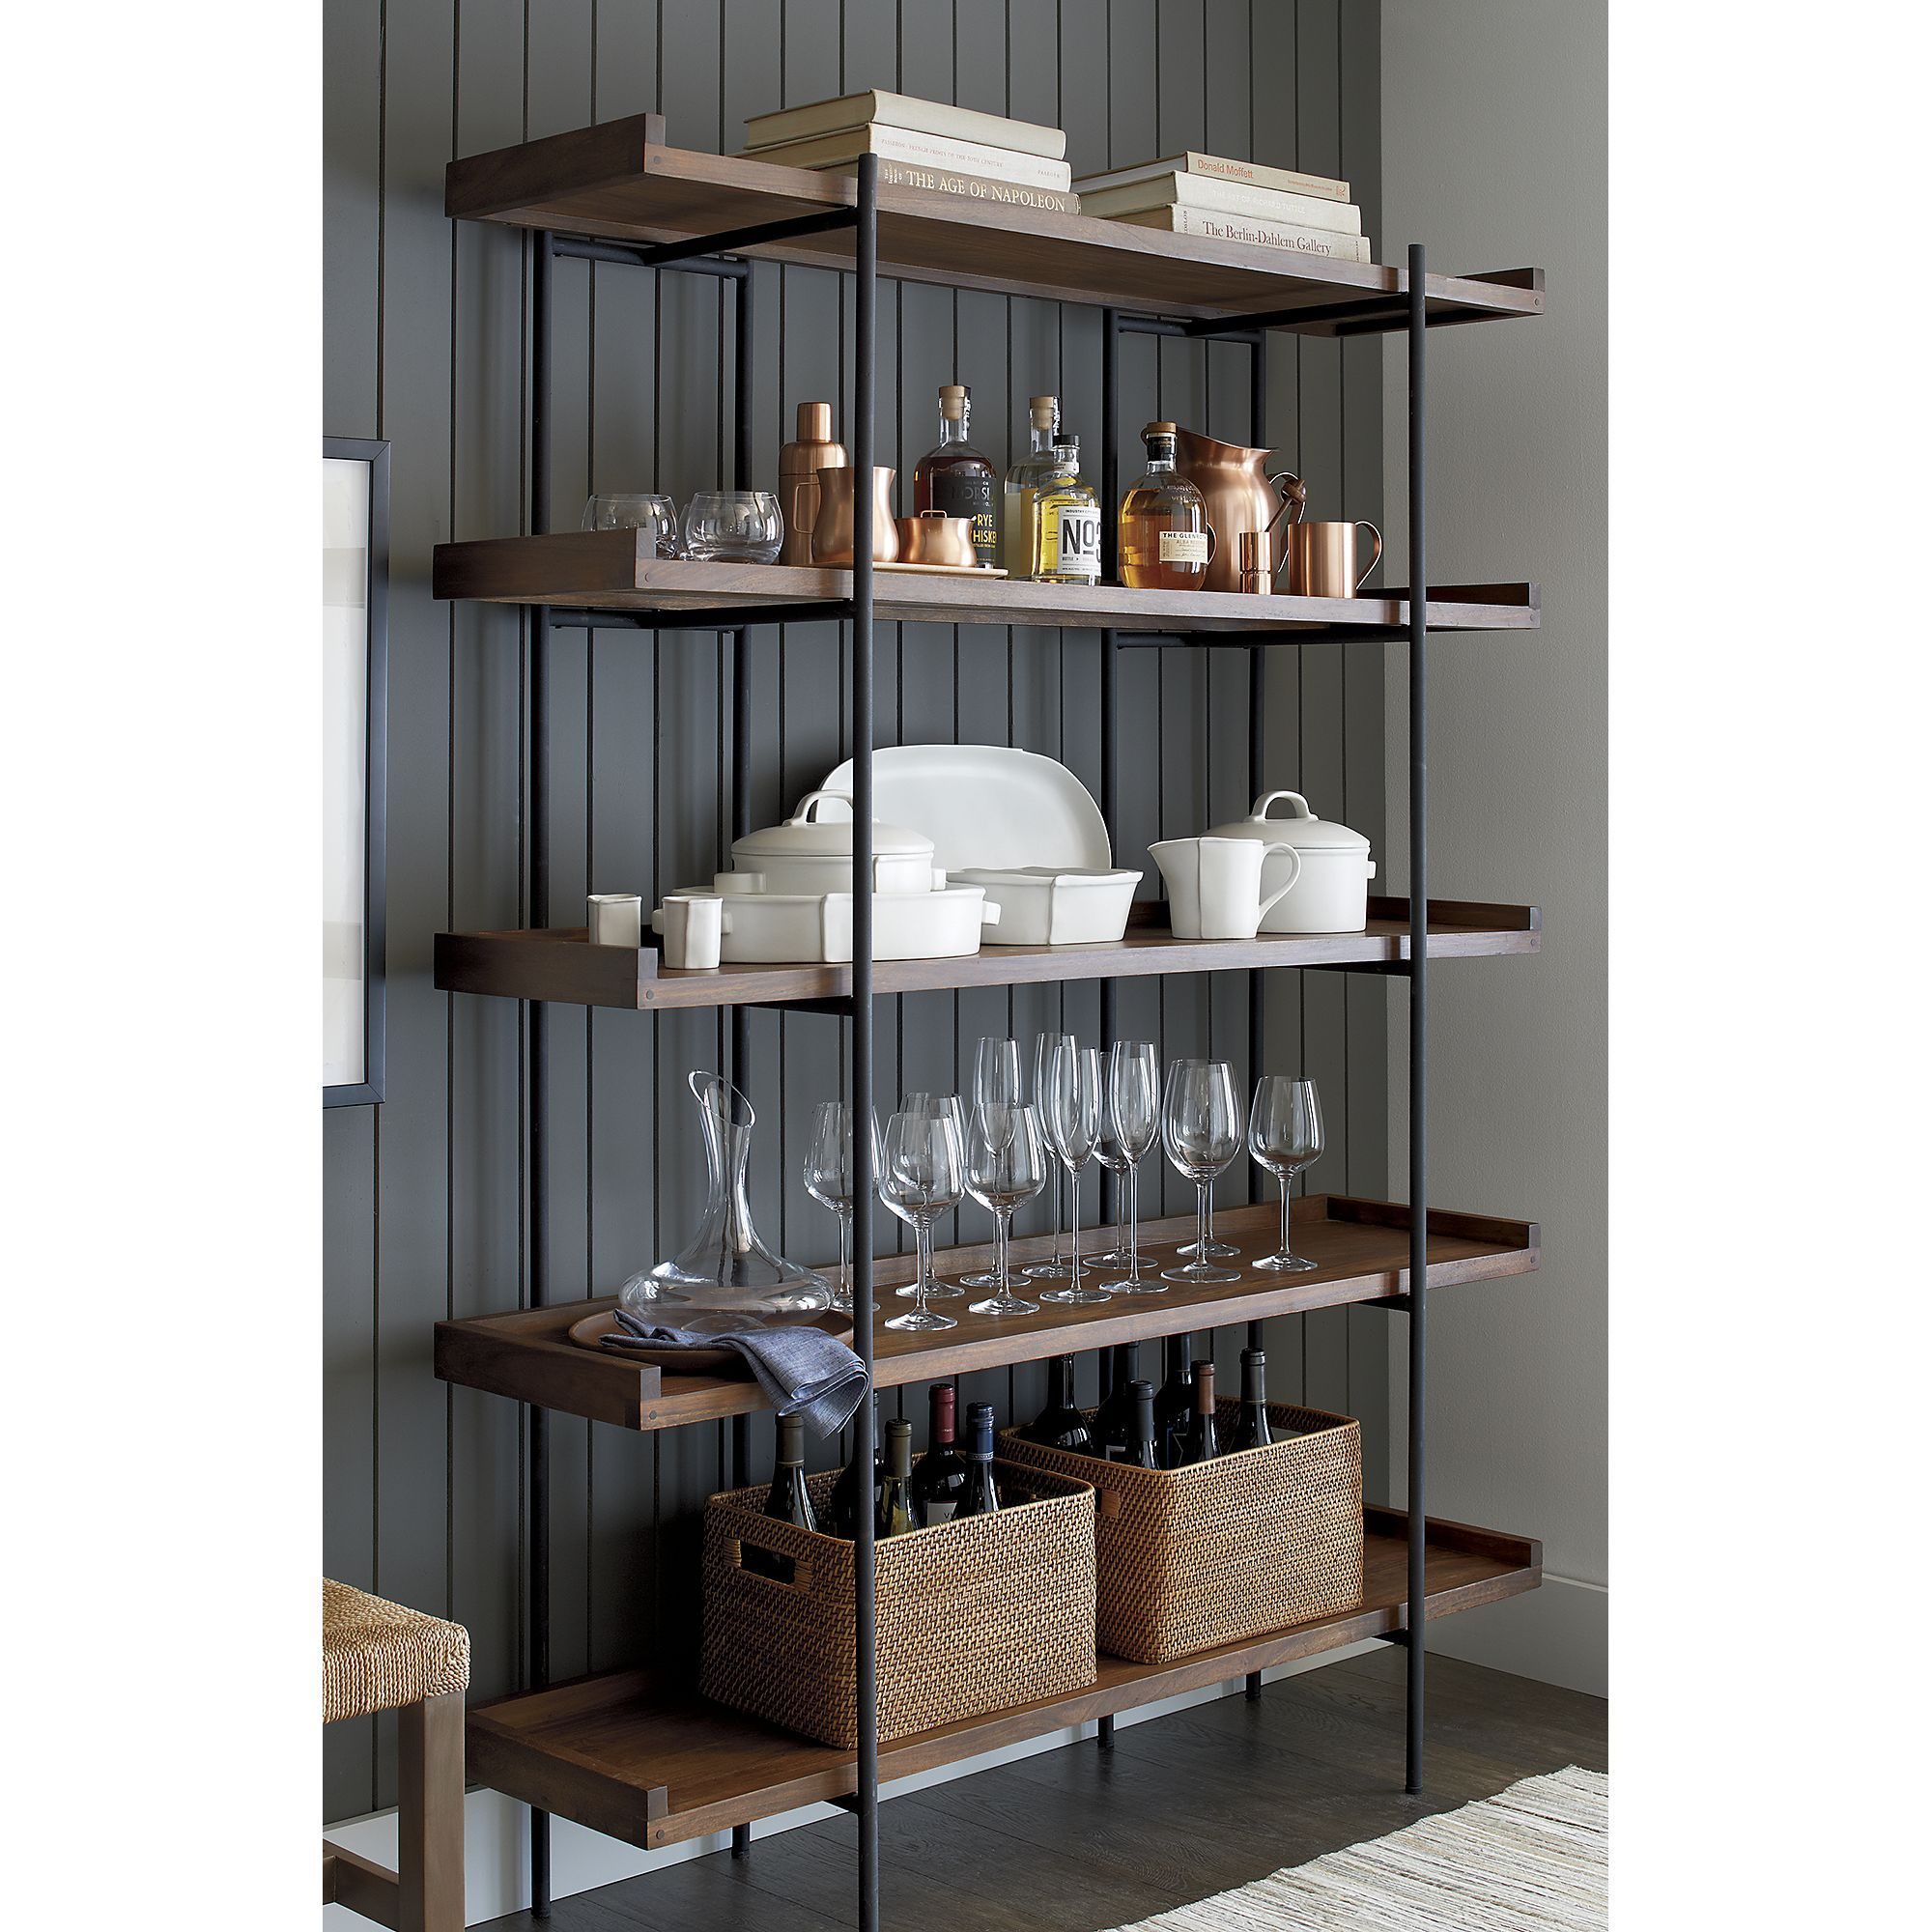 Dining Room Shelving And Storage: Beckett 5-High Shelf In Bookcases